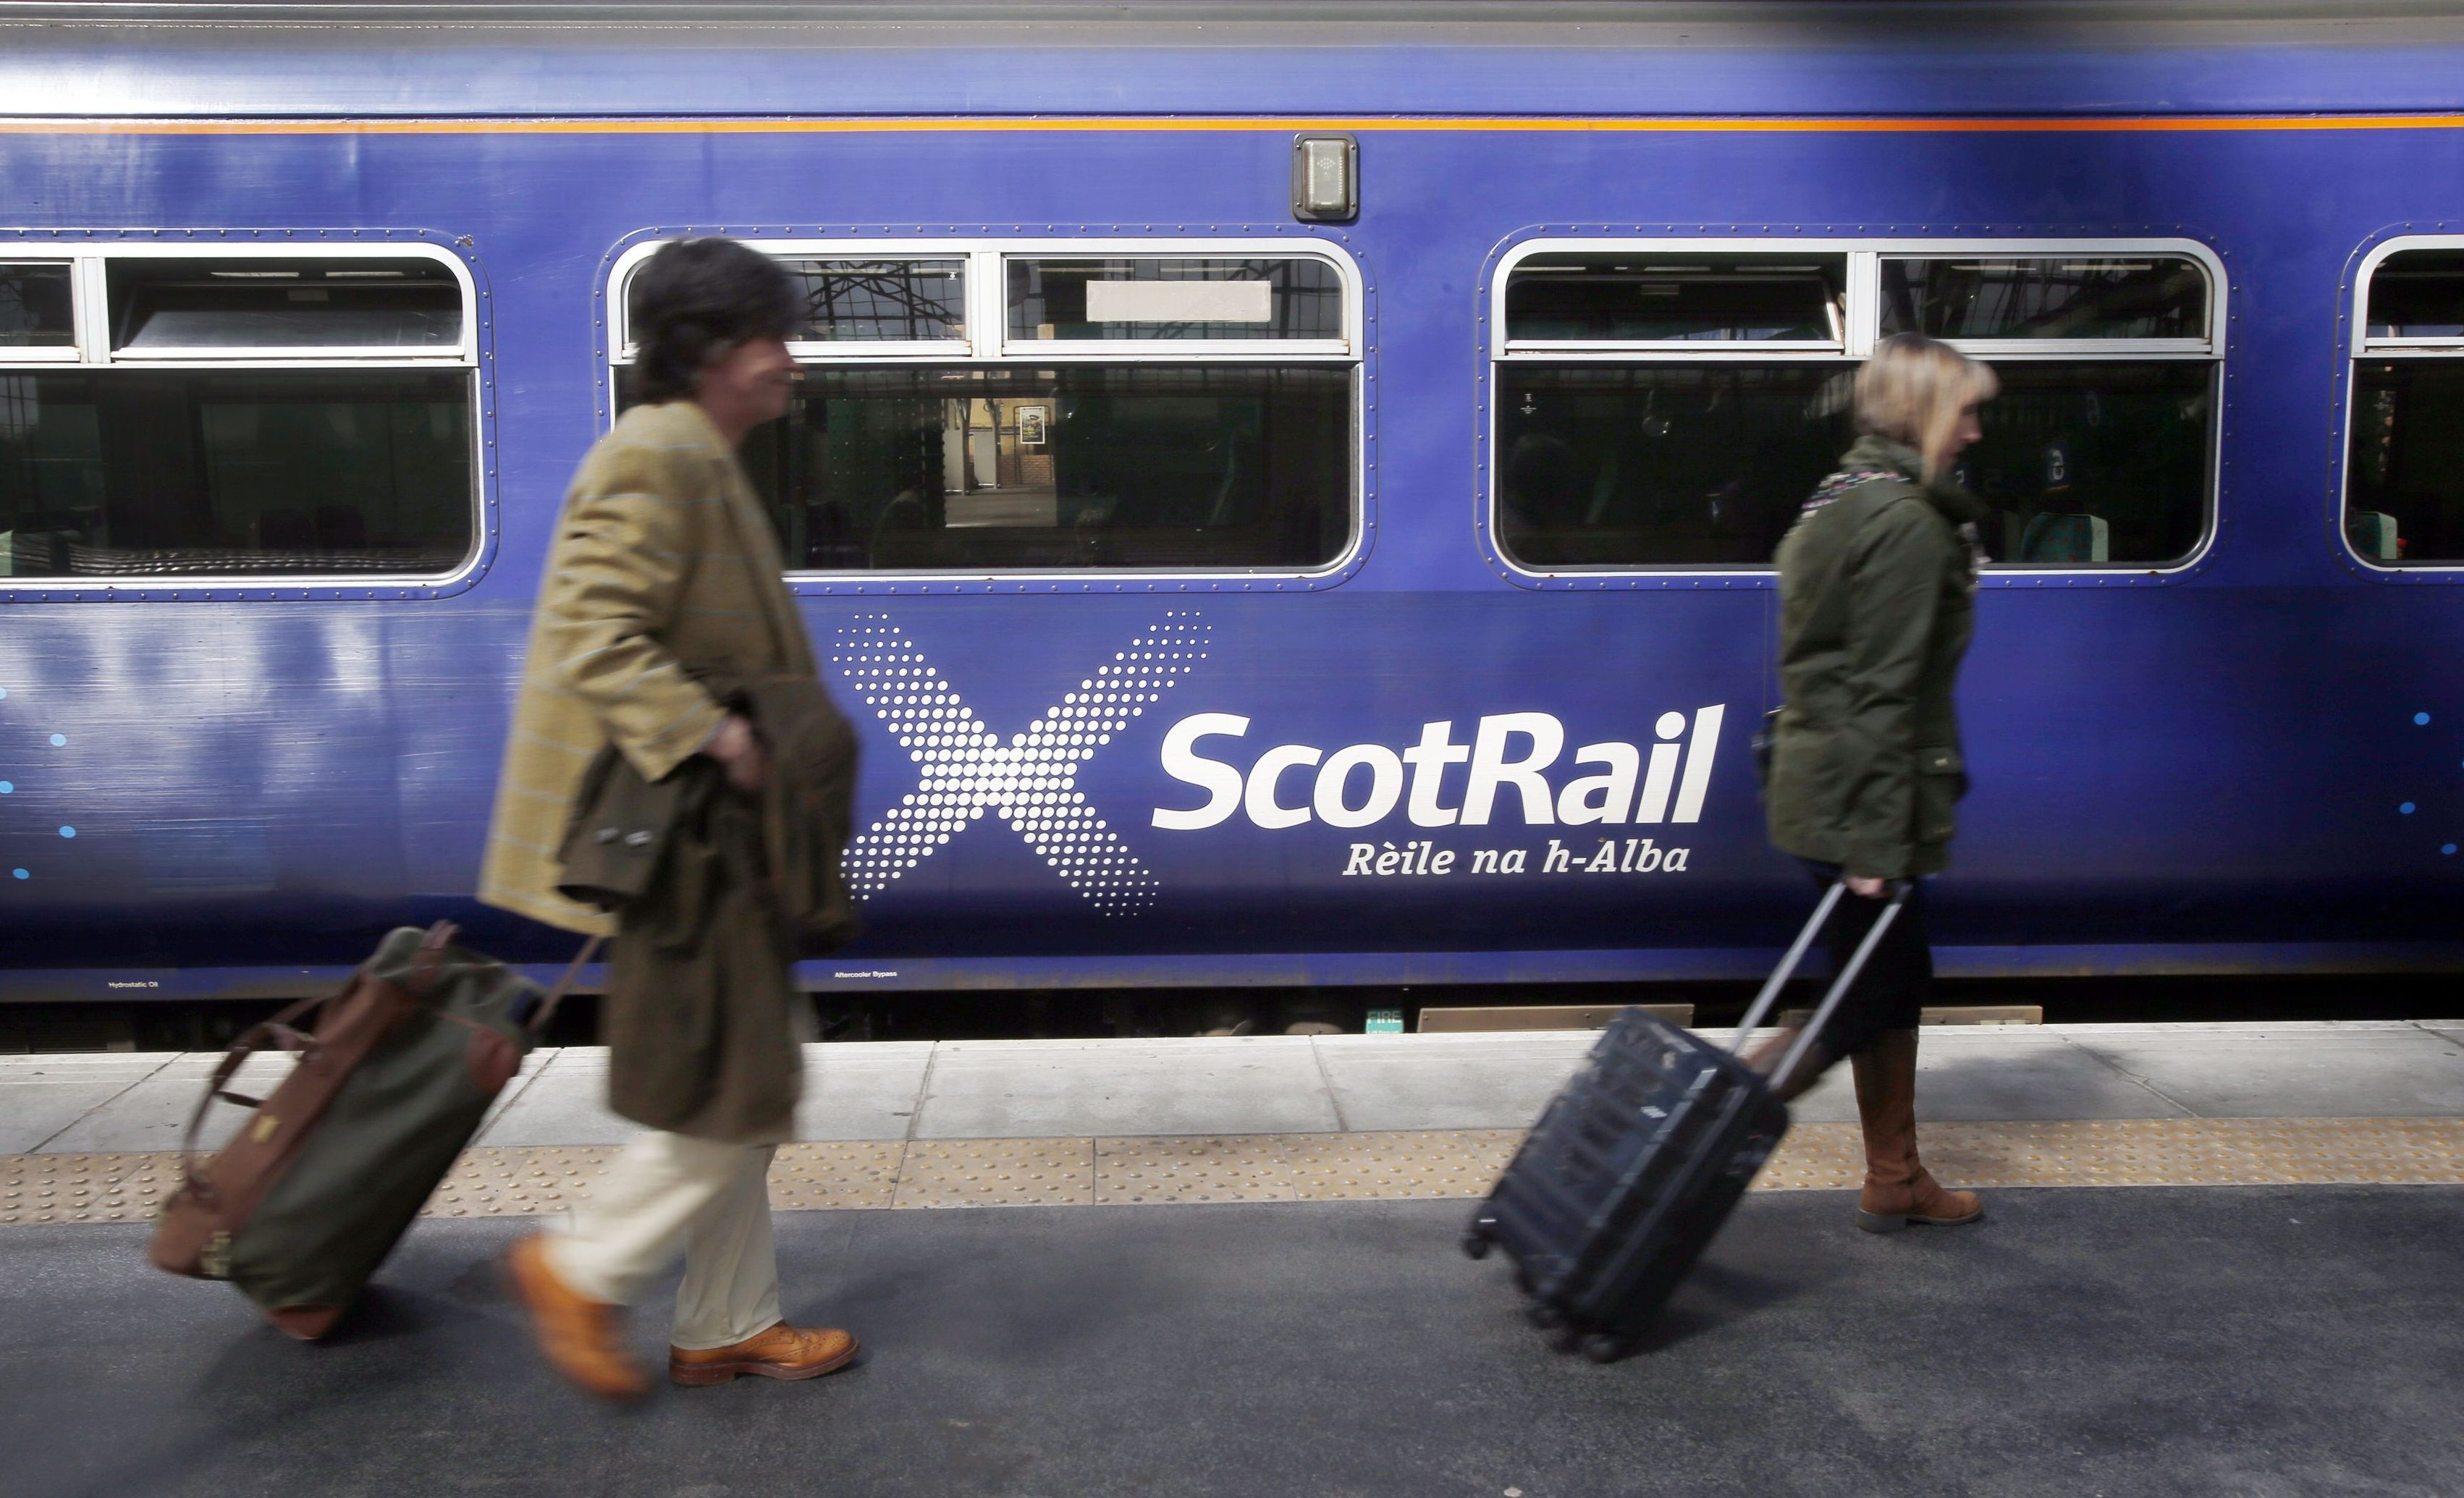 ScotRail is taking new action to tackle fare fraud